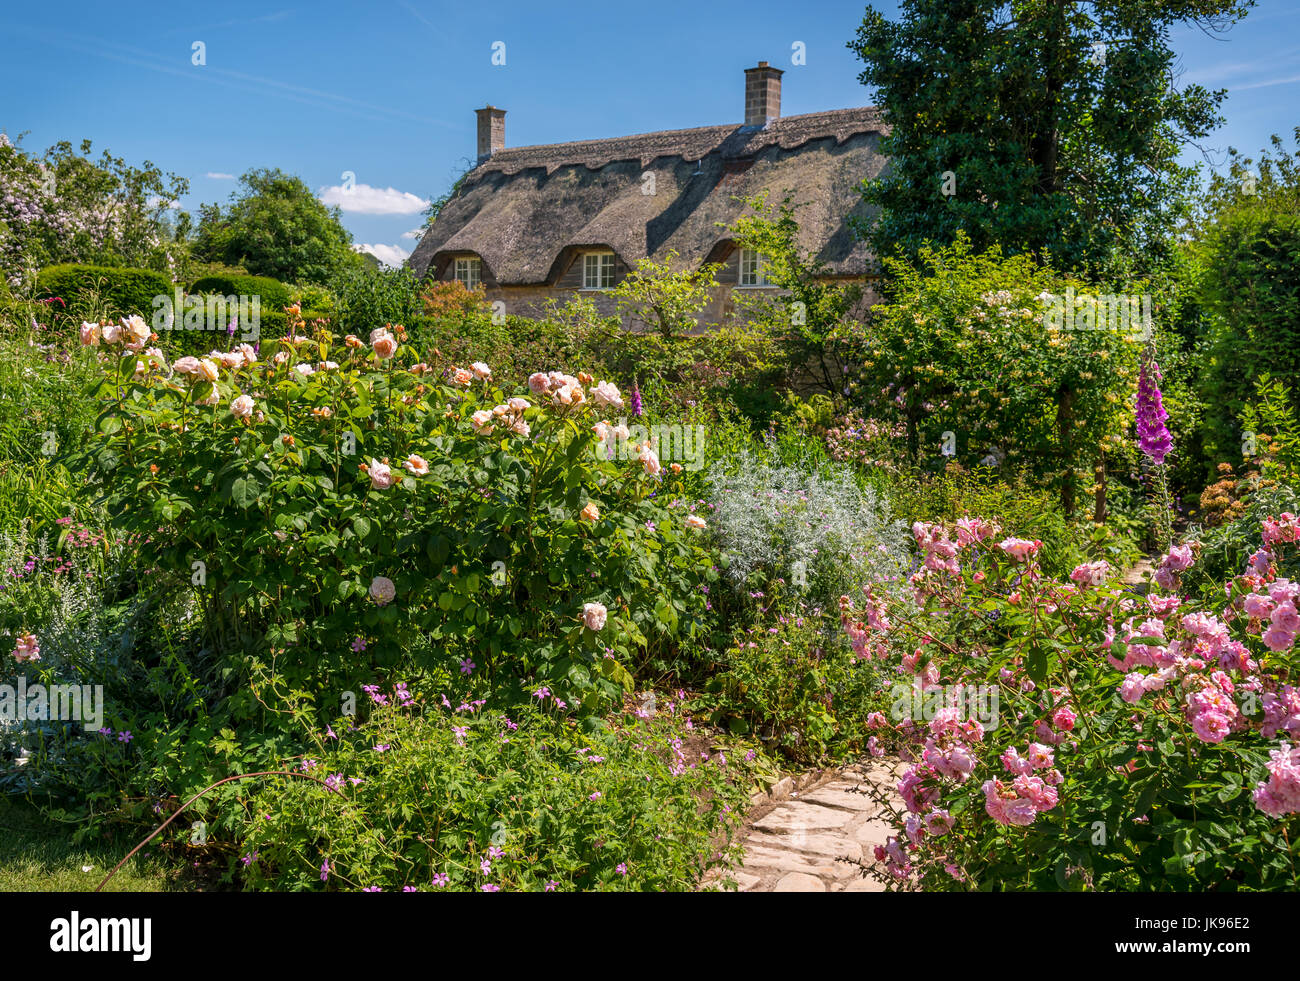 Typical 'English Country Garden' with country cottage - Stock Image